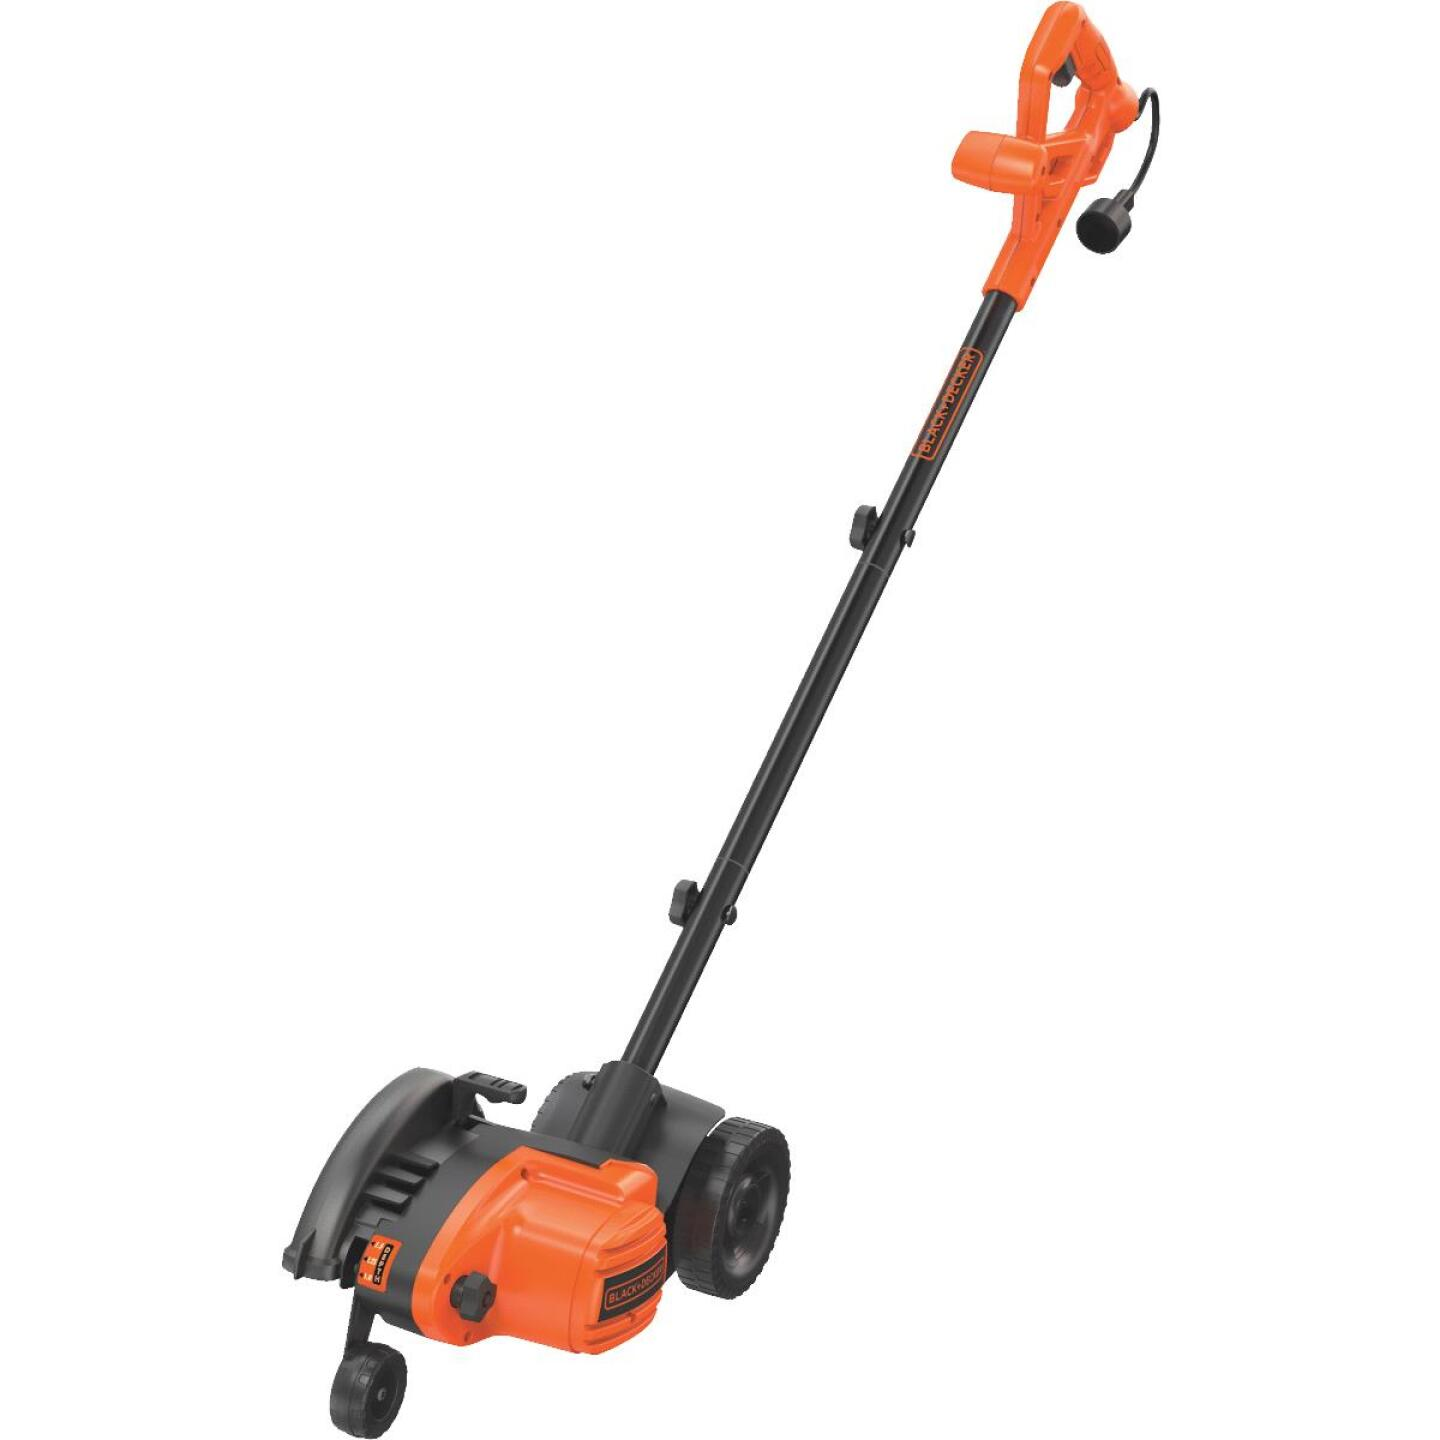 Black & Decker 2-In-1 7-1/2 In. 11-Amp Corded Electric Lawn Edger & Trencher Image 1